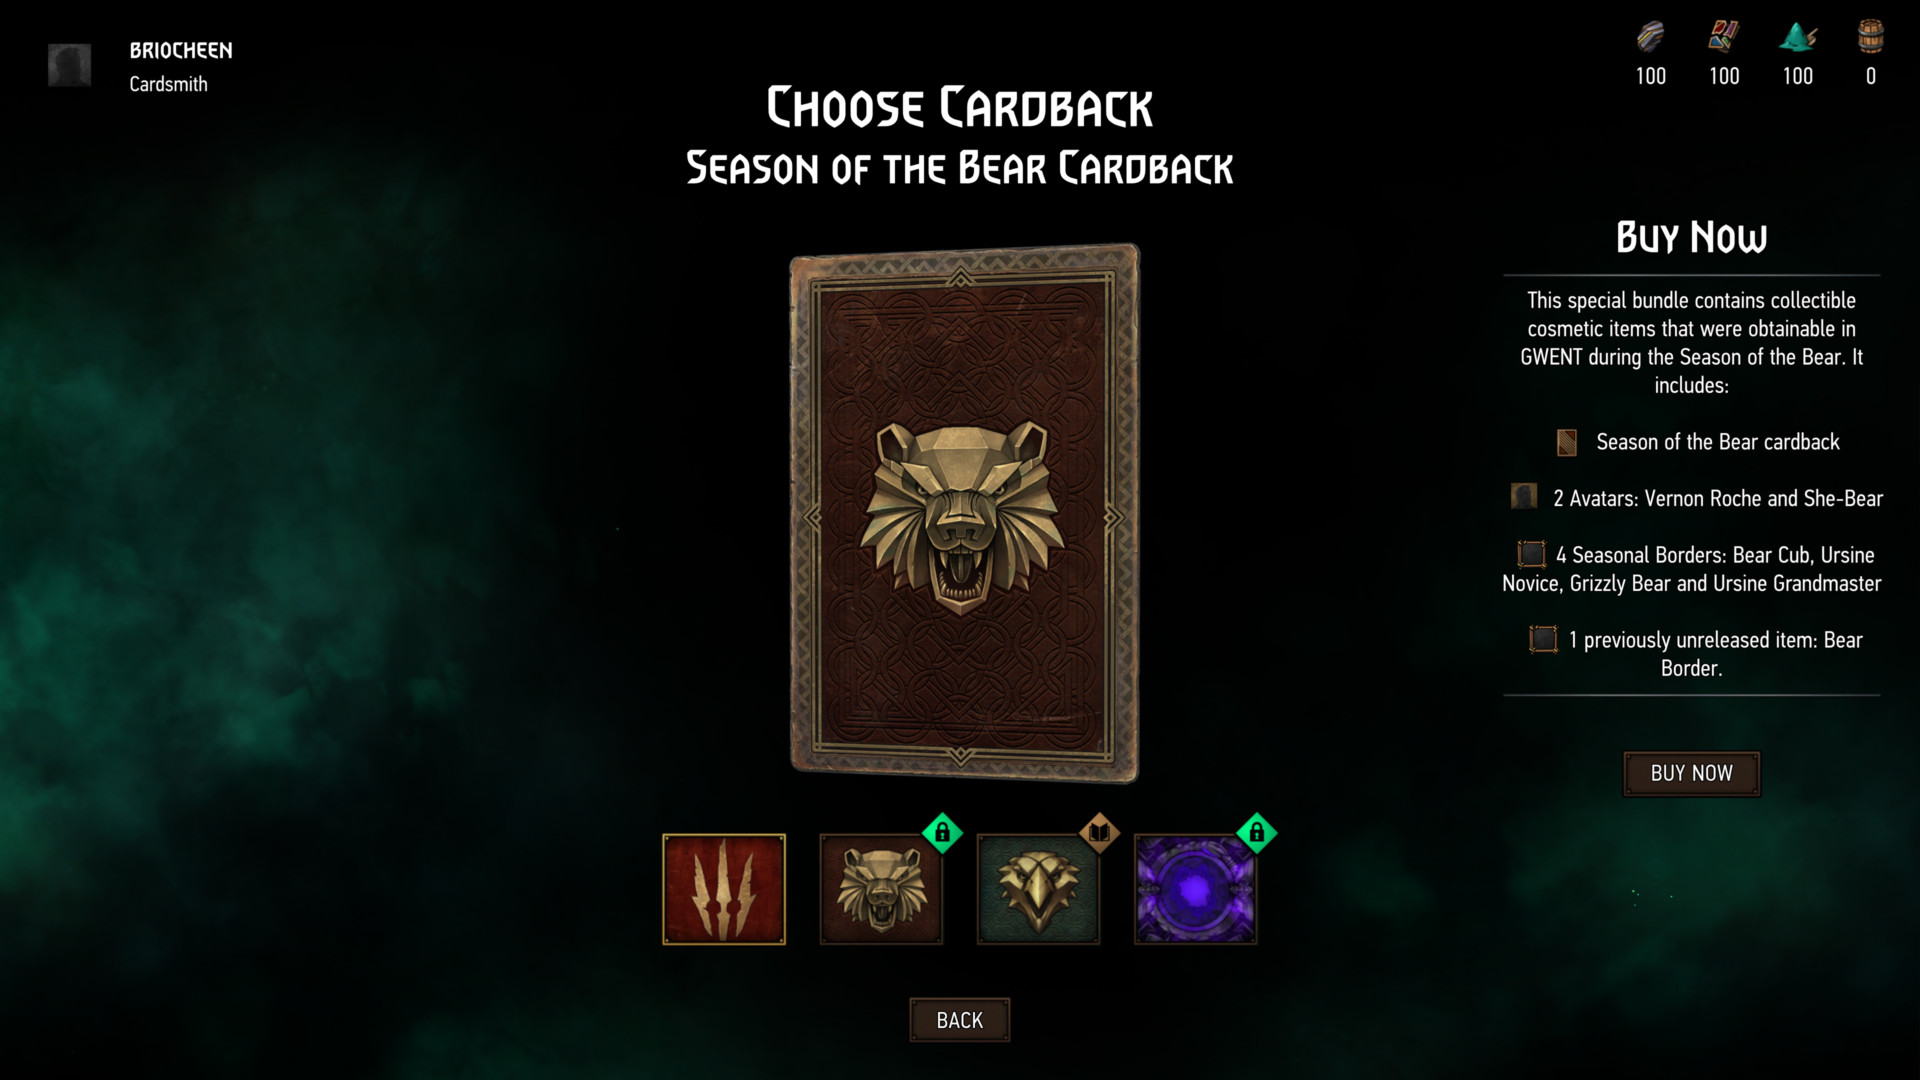 Choose cardback screenshot of Gwent: The Witcher Card Game video game interface.